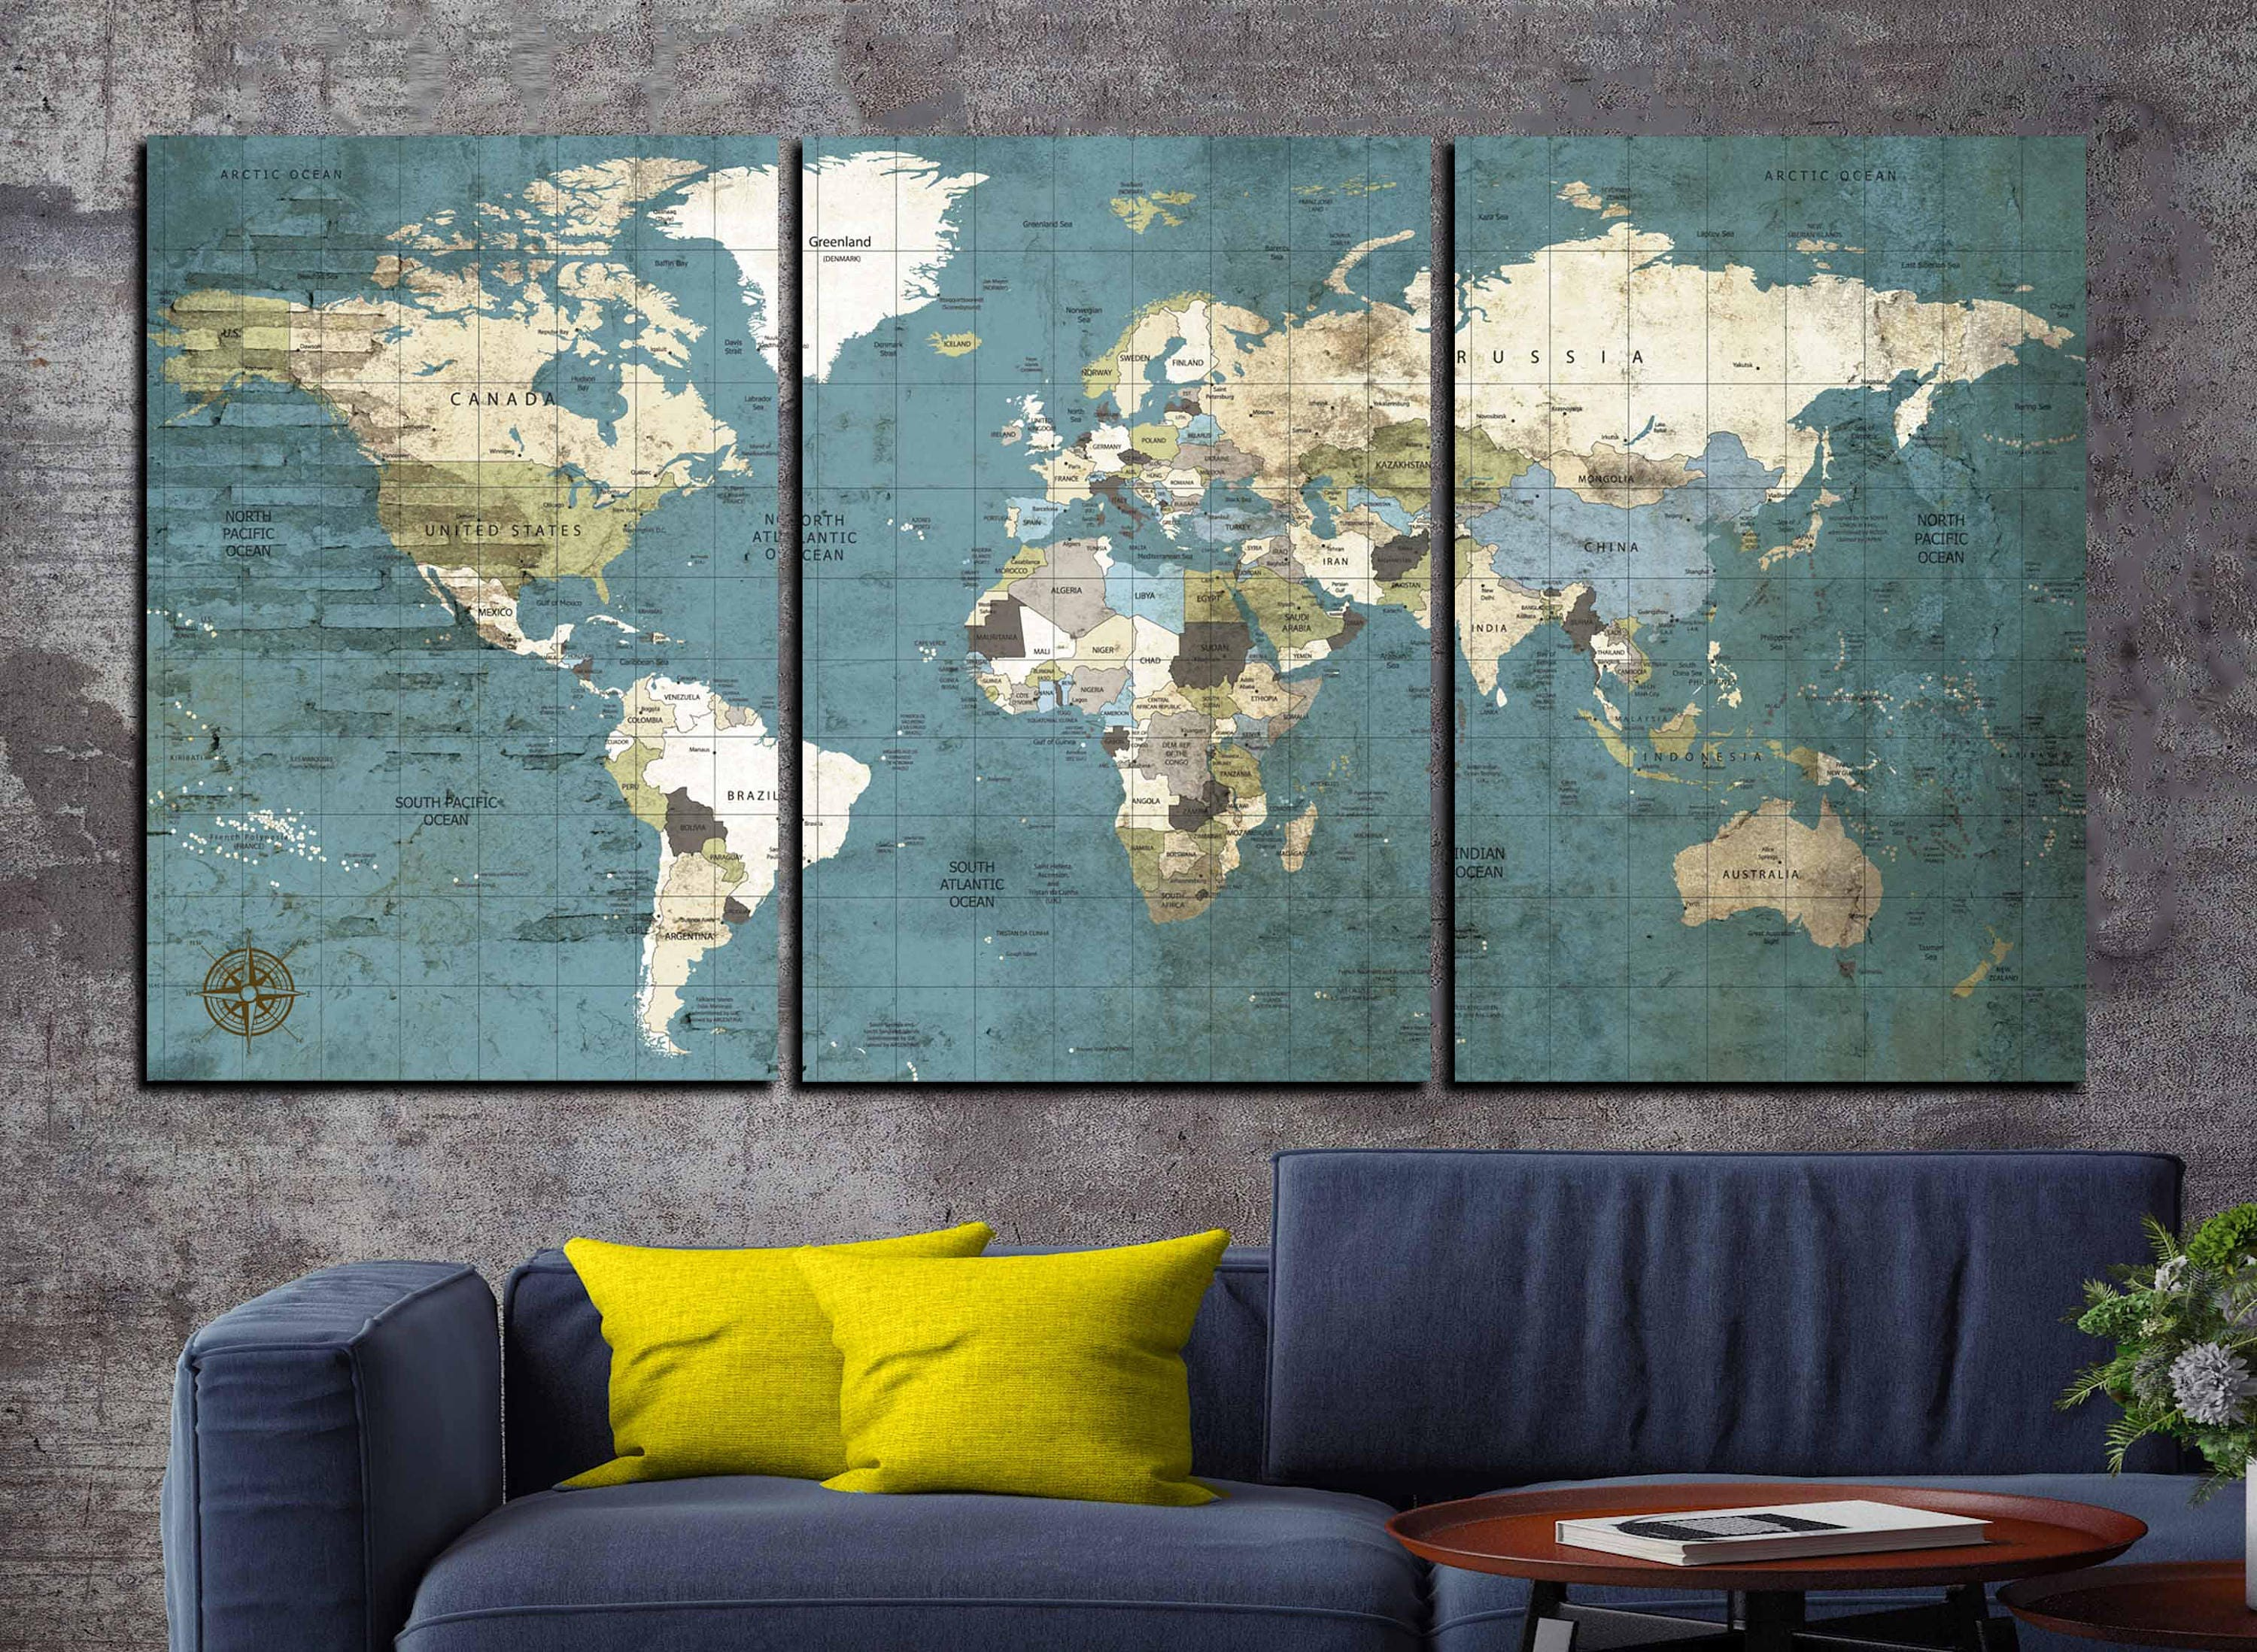 Large world map vintage canvas printworld map wall artworld map gallery photo gallery photo gallery photo gallery photo gumiabroncs Images